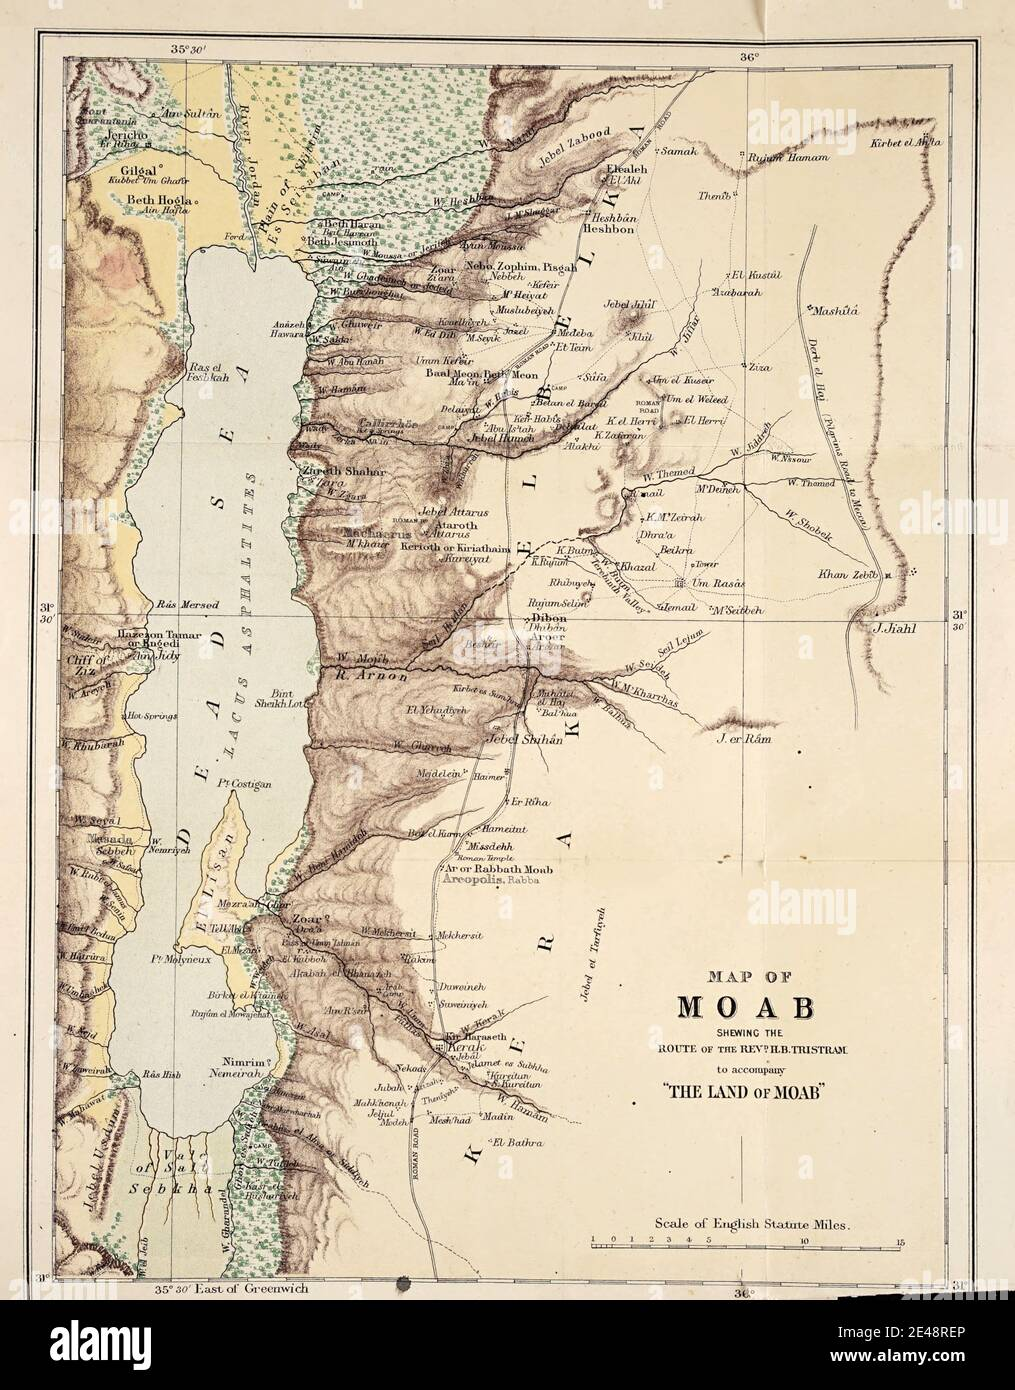 Ancient Map of Moab and the Dead Sea from 1873 From the book ' Land of Moab : travels and discoveries on the east side of the Dead Sea and the Jordan ' by Tristram, H. B. (Henry Baker), 1822-1906 Published in London in 1873 by  J. Murray Stock Photo